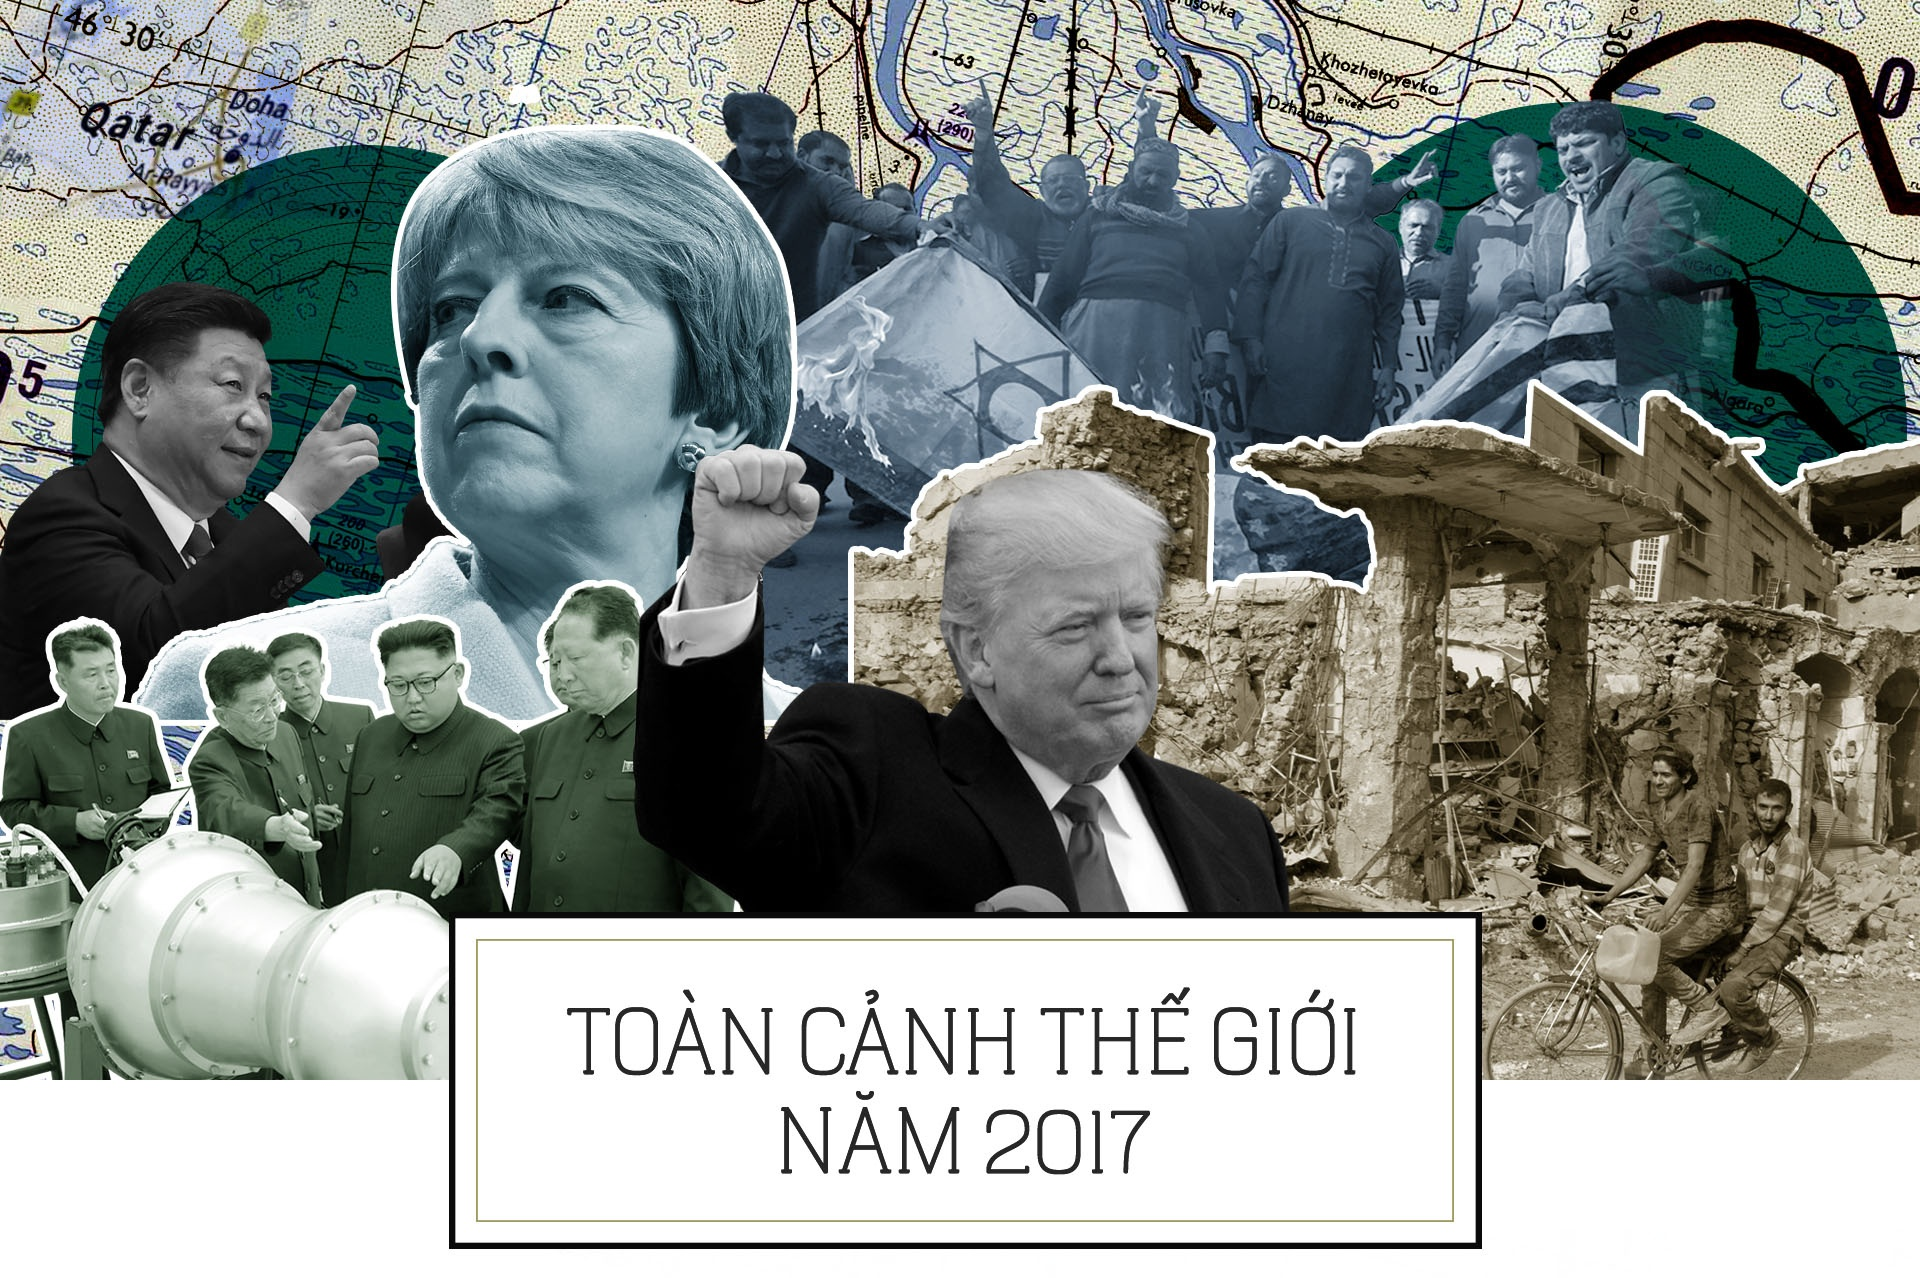 toan canh the gioi 2017 anh 2